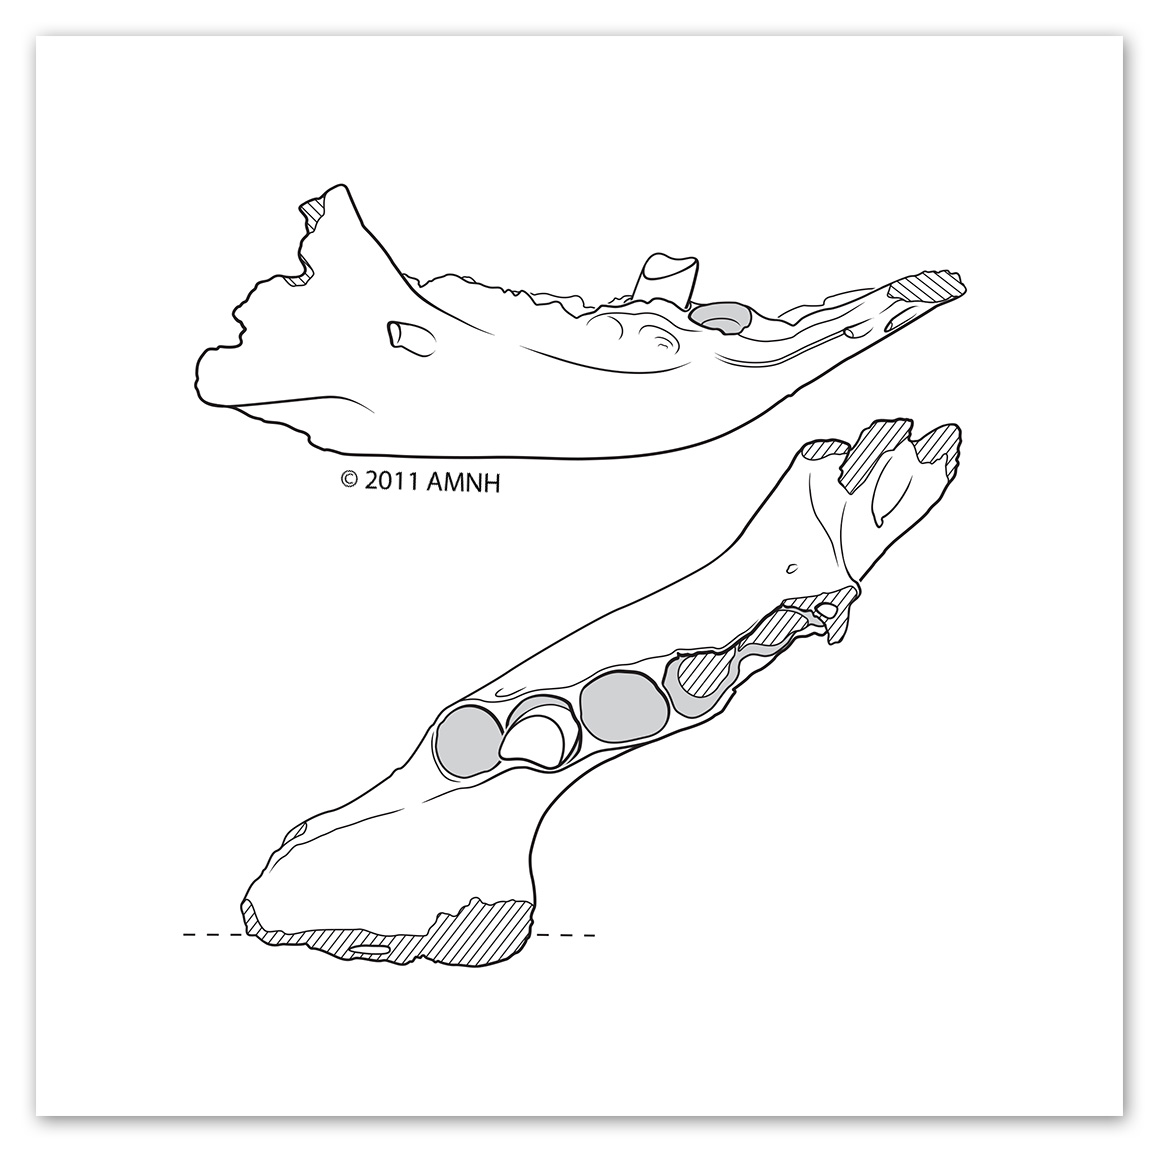 Prehistoric Sloth Jaw   Medium: Illustrator  Objective: To clearly illustrate the form of a discovered sloth jaw for a paleontological publication.  © 2011 American Museum of Natural History